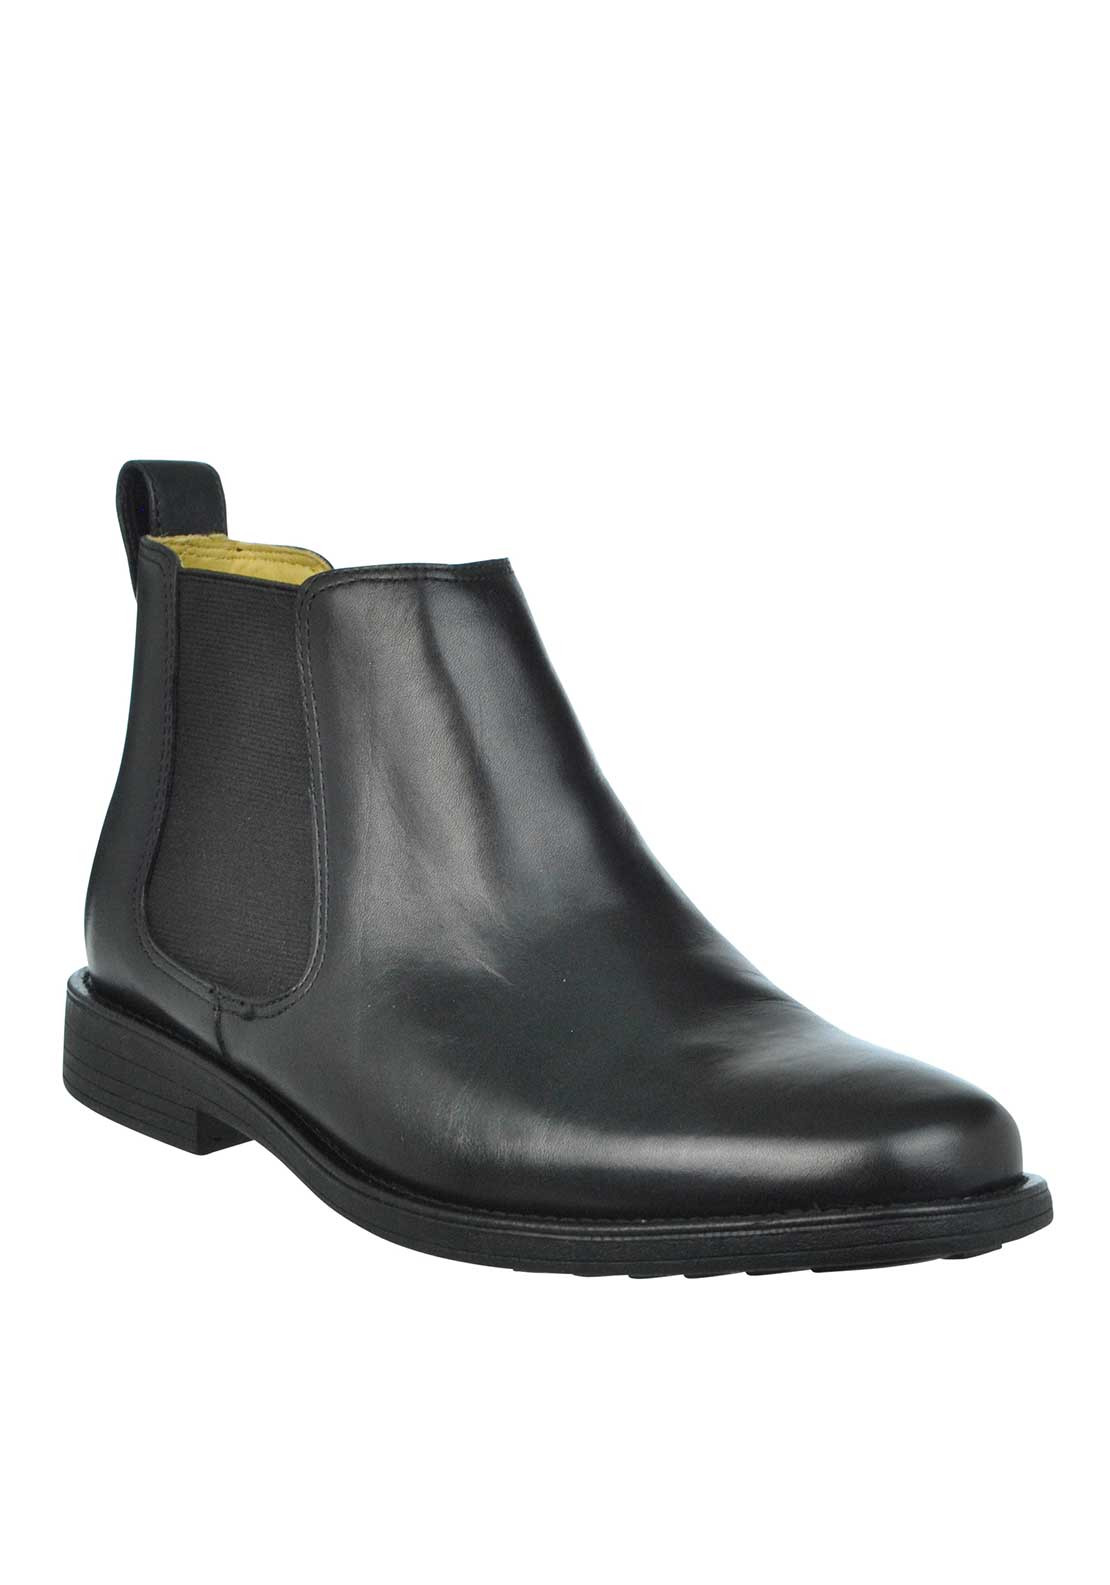 Steptronic Austin Leather Chelsea Boots, Black